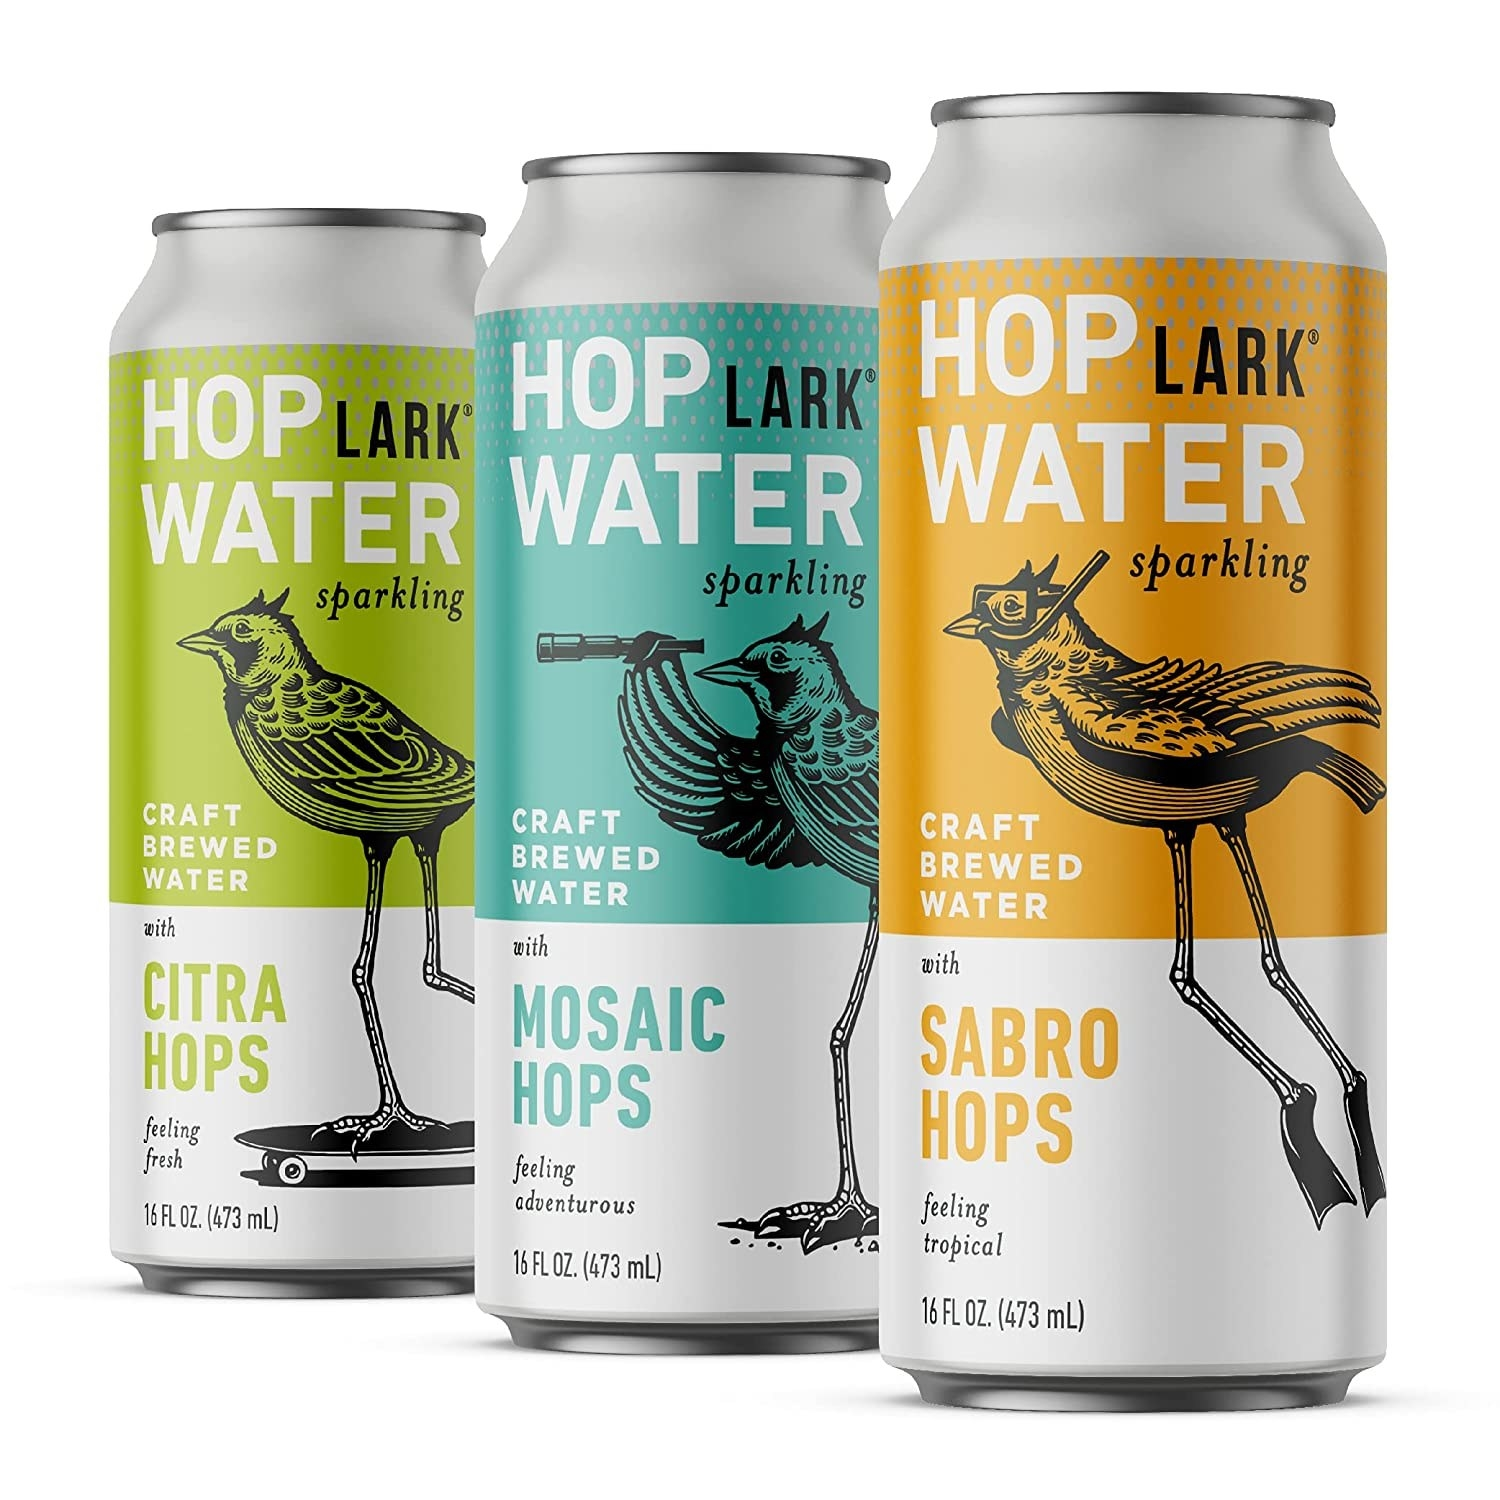 Three cans of hops water in green, turquoise, and yellow